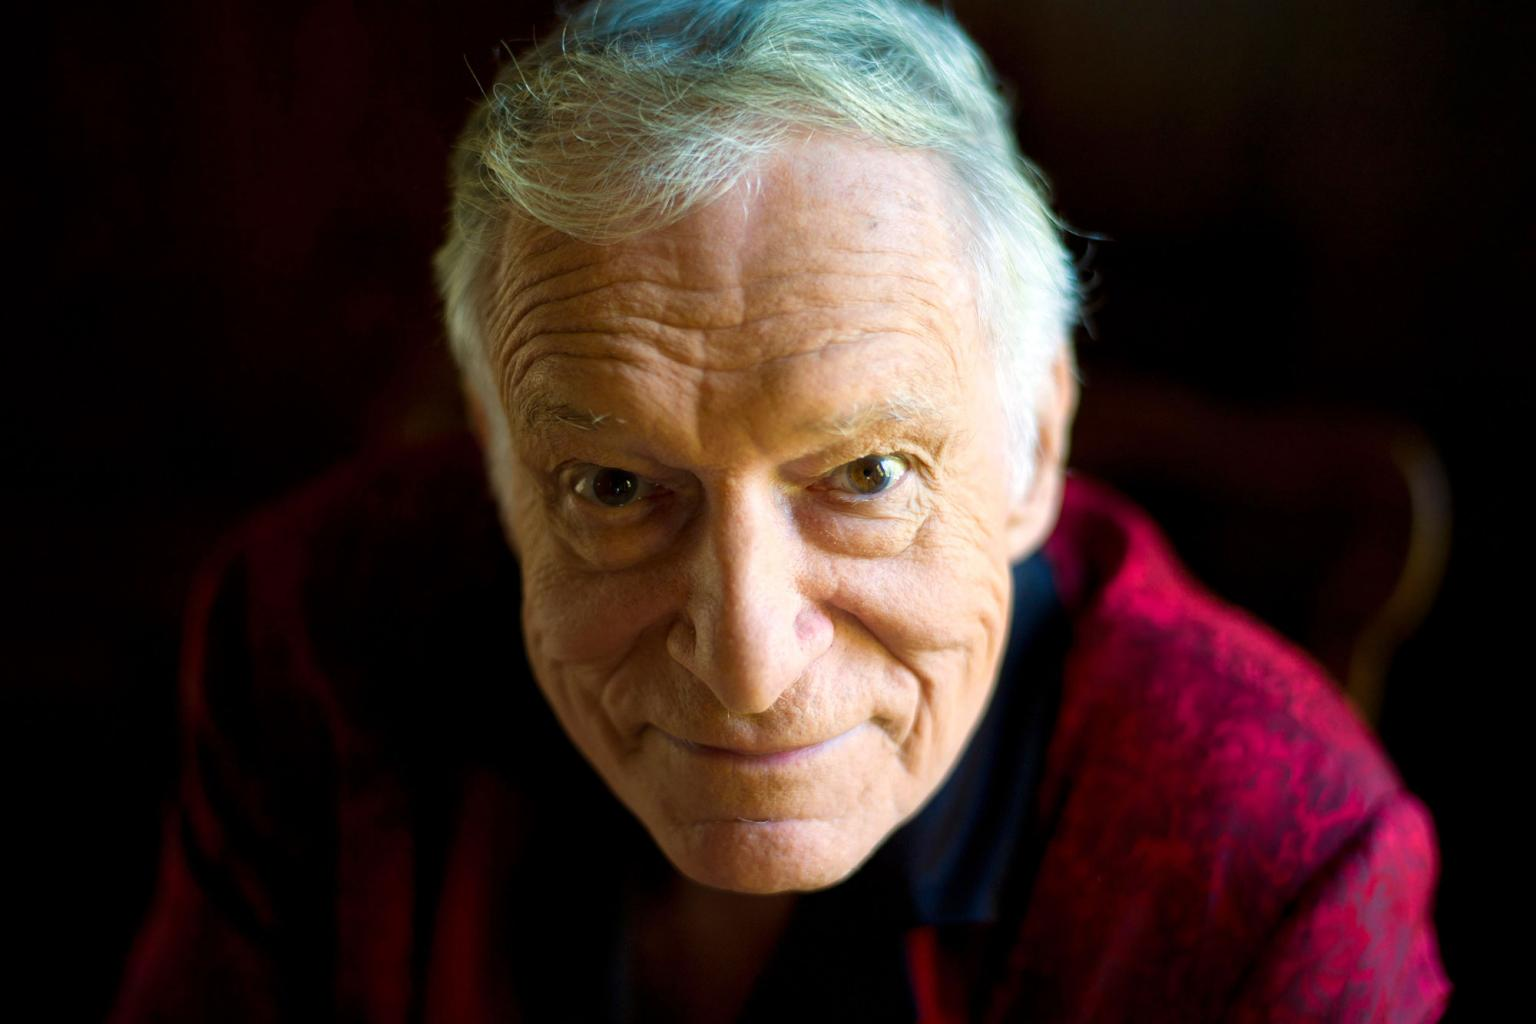 Hugh Hefner, Playboy Magazine Founder and Star of Girls Next Door, Dies at 91